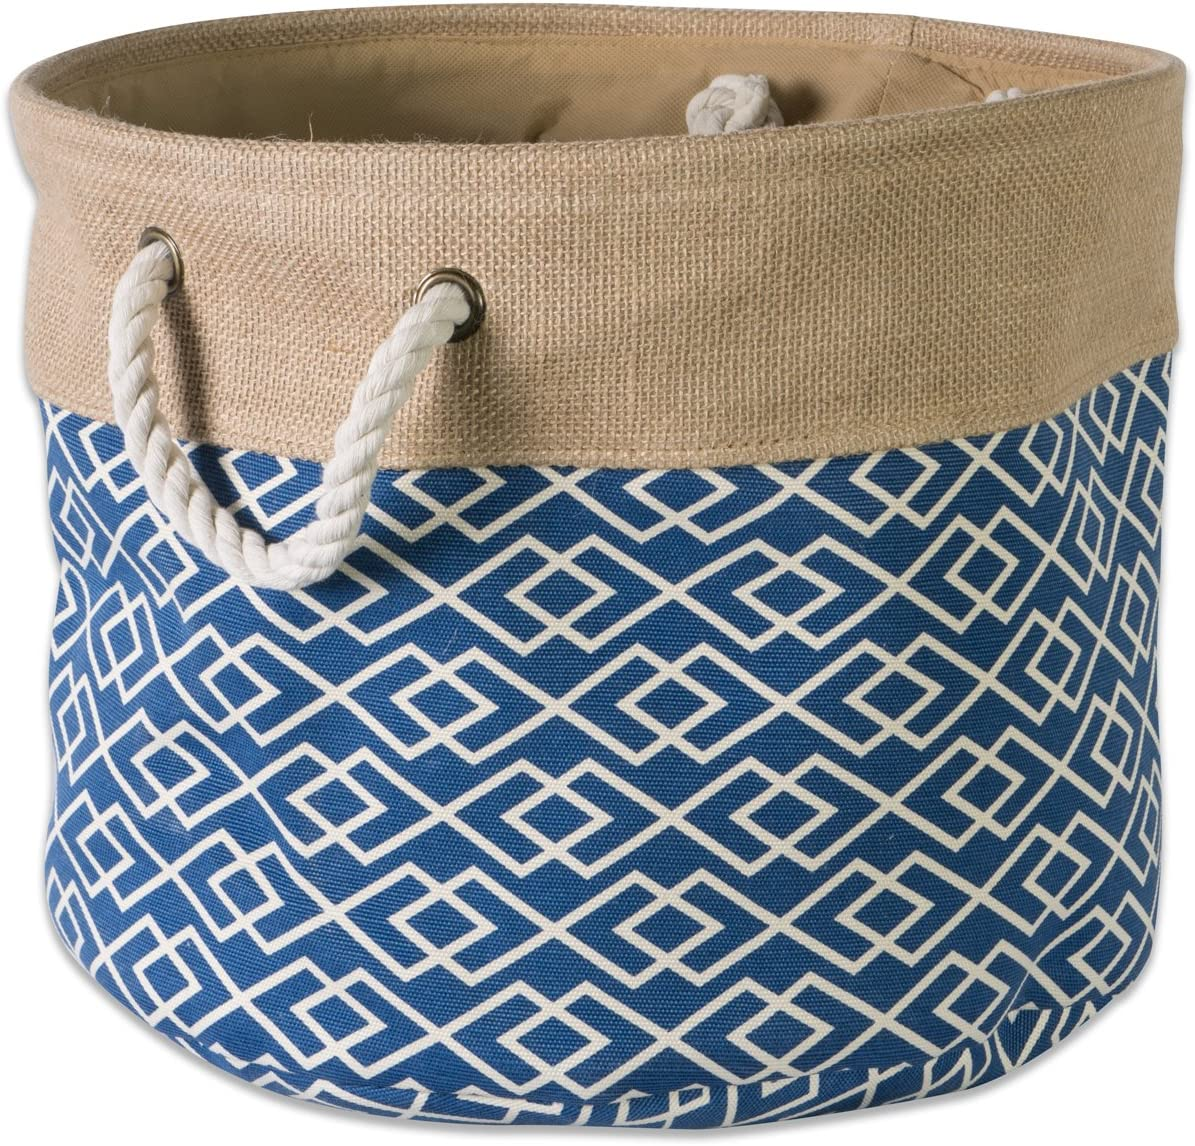 """DII CAMZ37143Collapsible Burlap Storage Basket or Bin with Durable Cotton Handles, Home Organizational Solution for Office, Bedroom, Closet, Toys, & Laundry (Small Round - 12x9""""), Diamond Navy"""